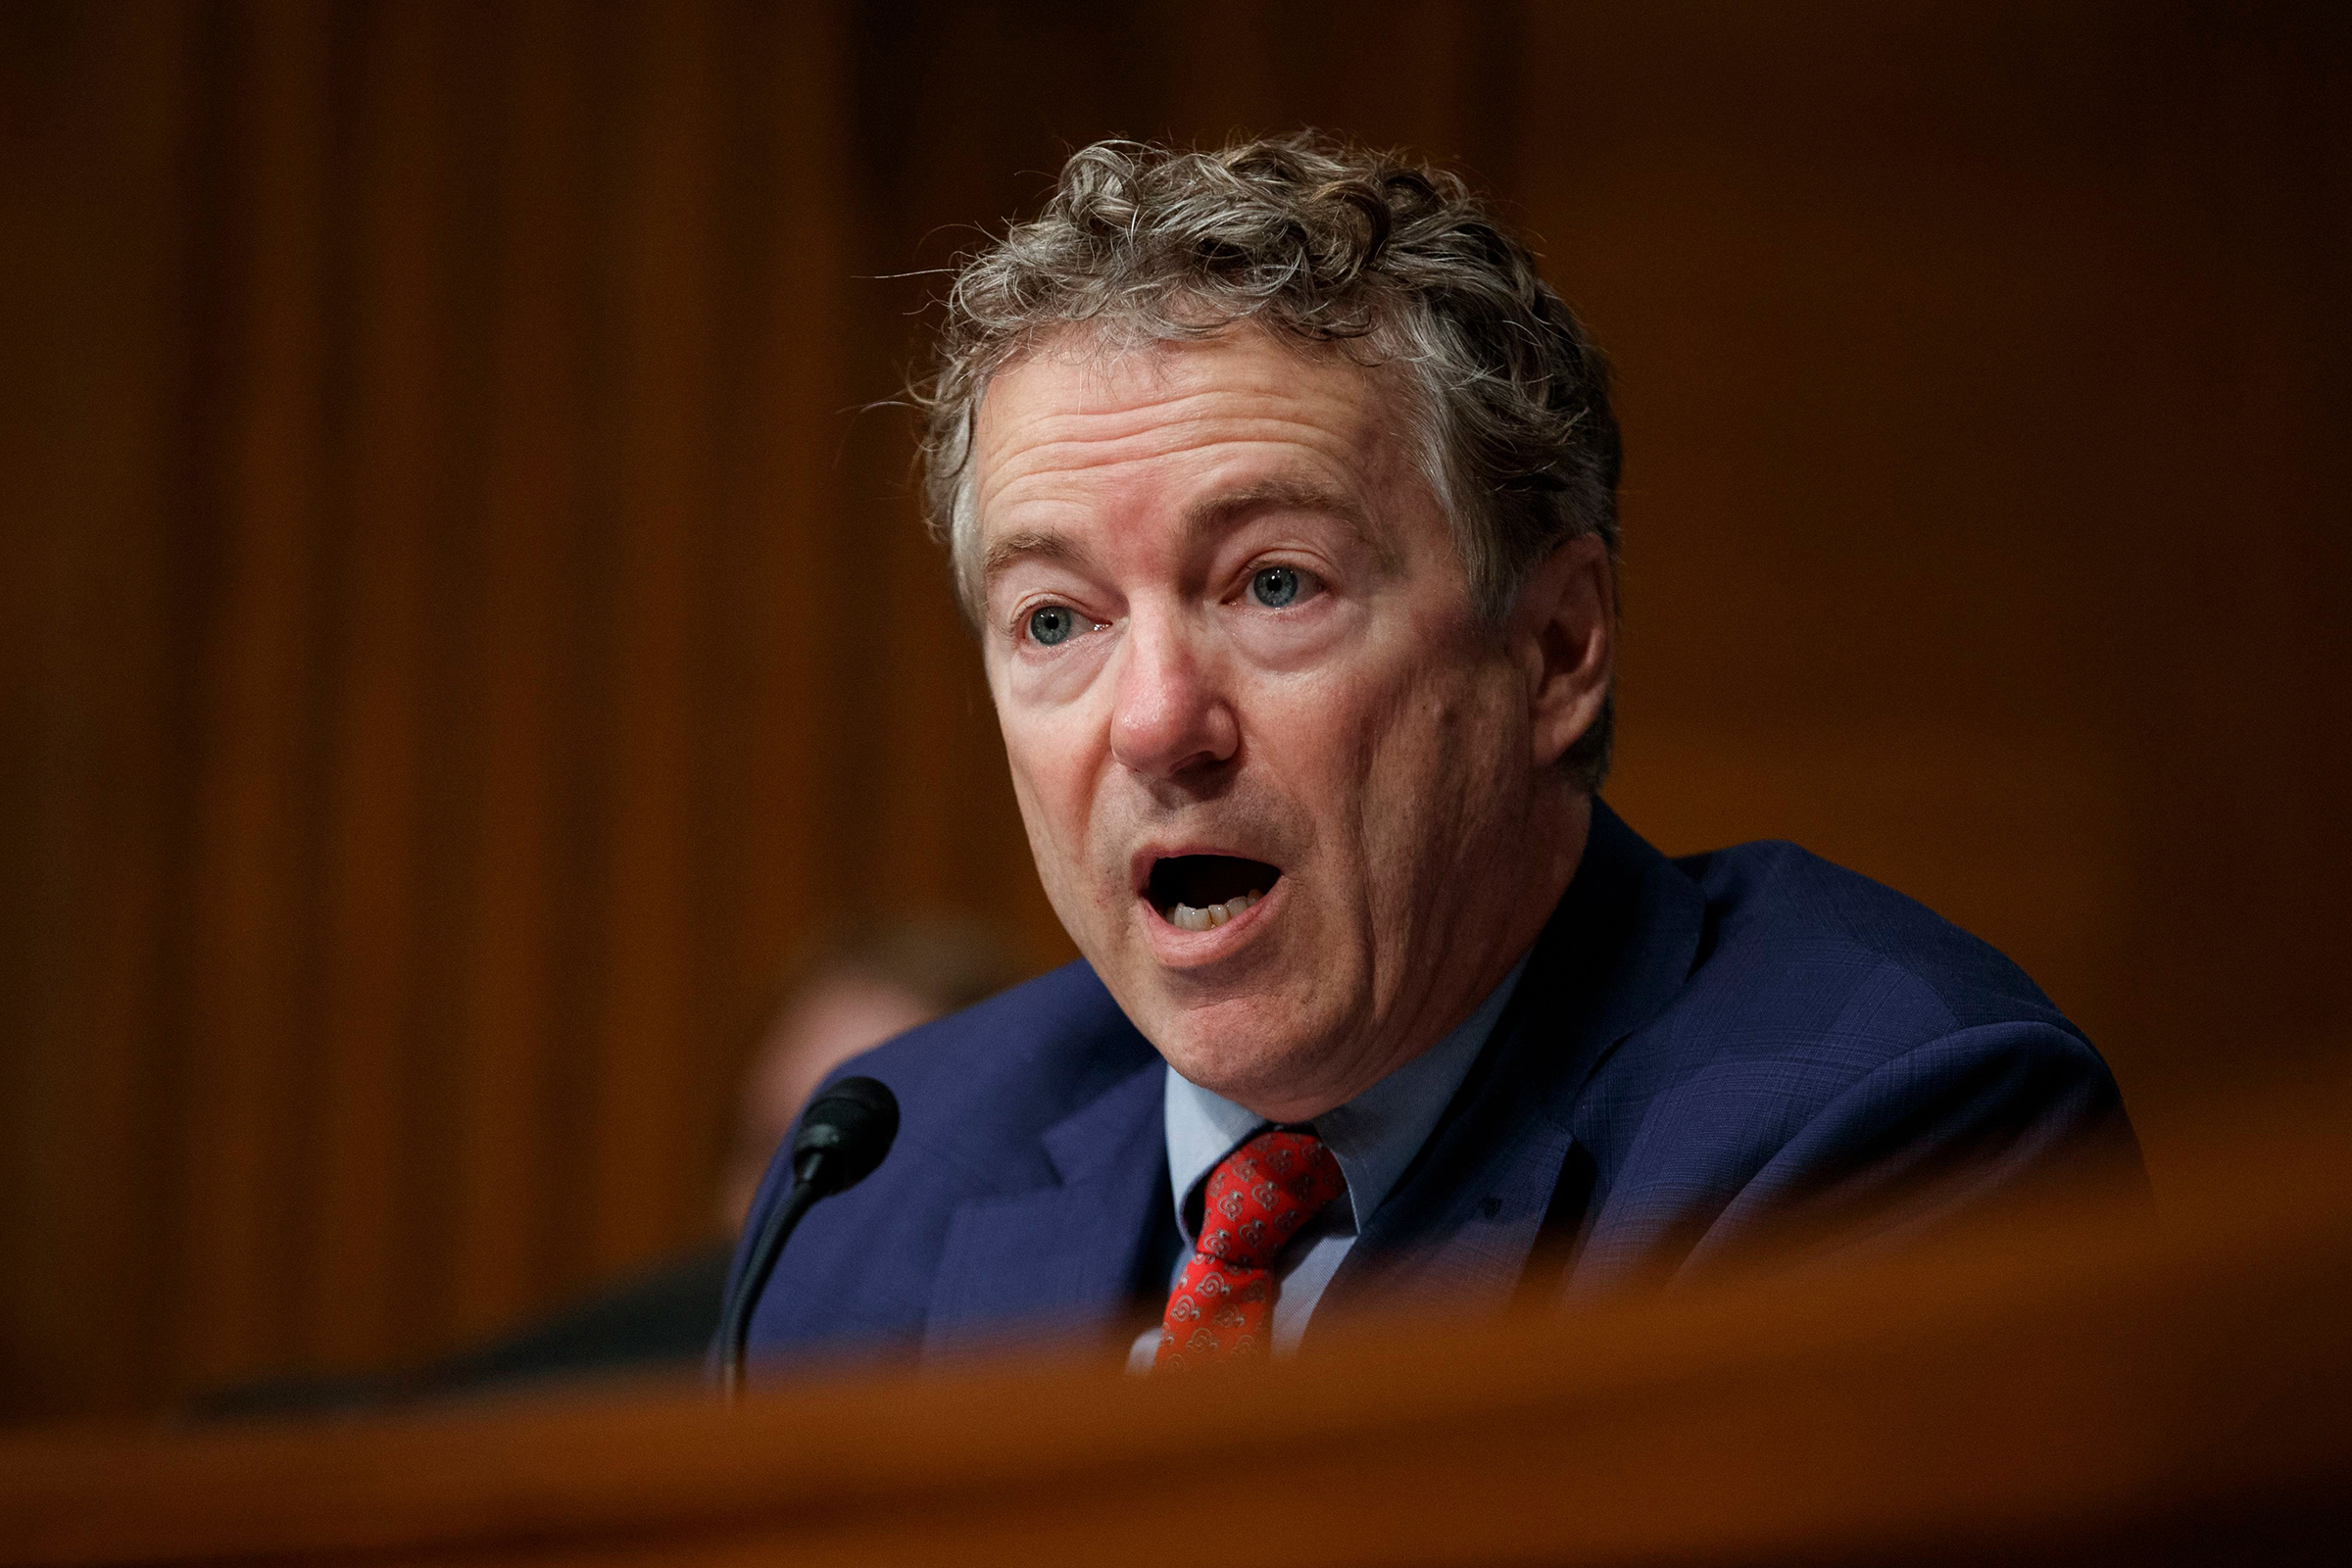 Rand Paul: Tax Cuts For Corporations Can Add to the Deficit But 9/11 Victim Relief Shouldn't